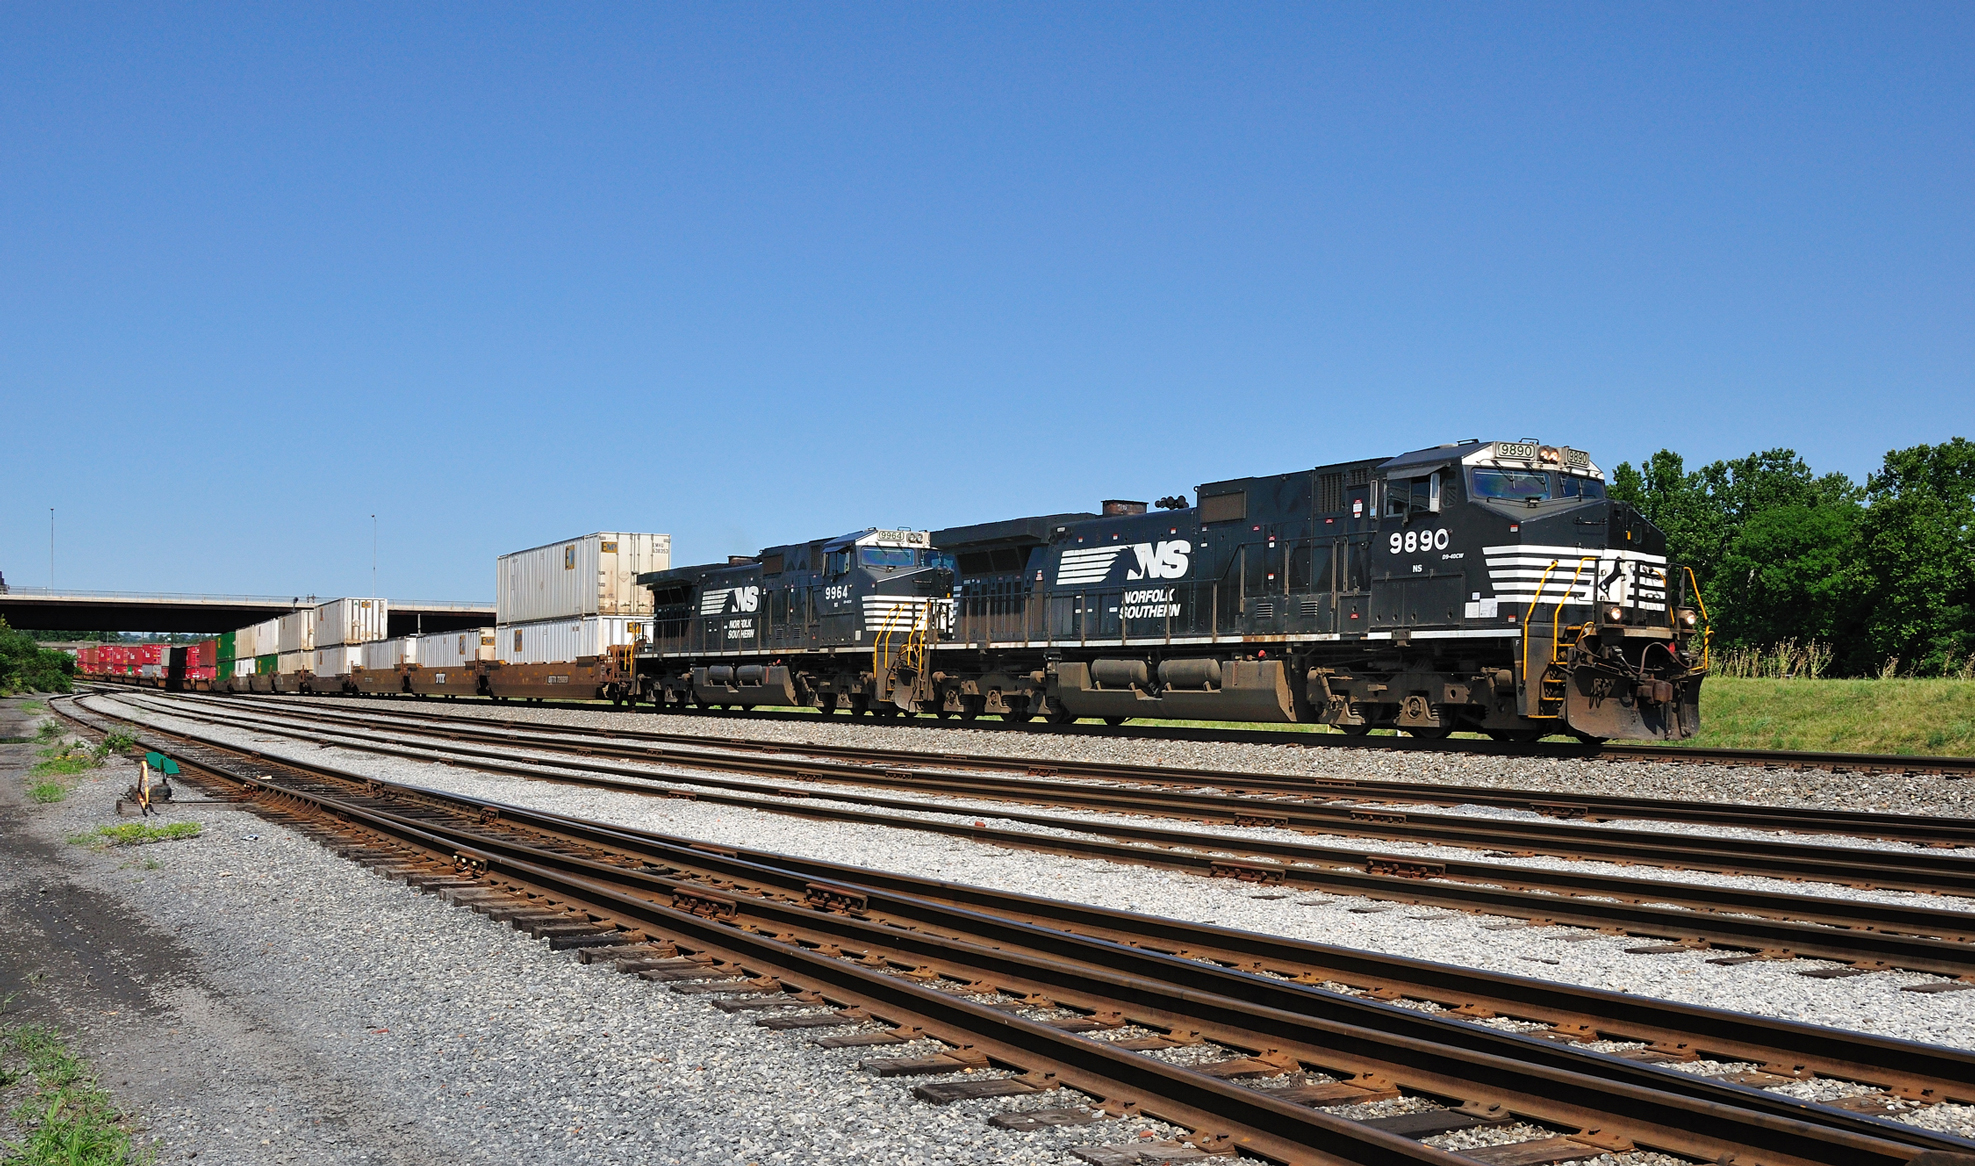 Train 22V speeds towards northern New Jersey, passing the small Norfolk Southern River Yard